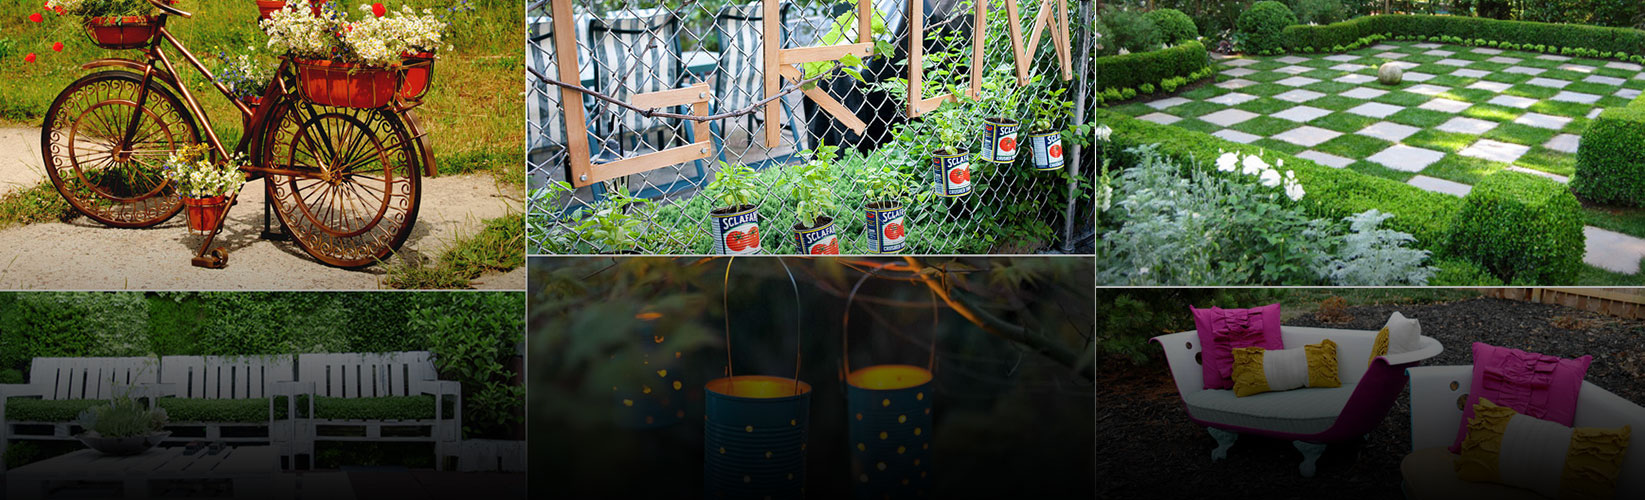 33 Quirky Garden Ideas